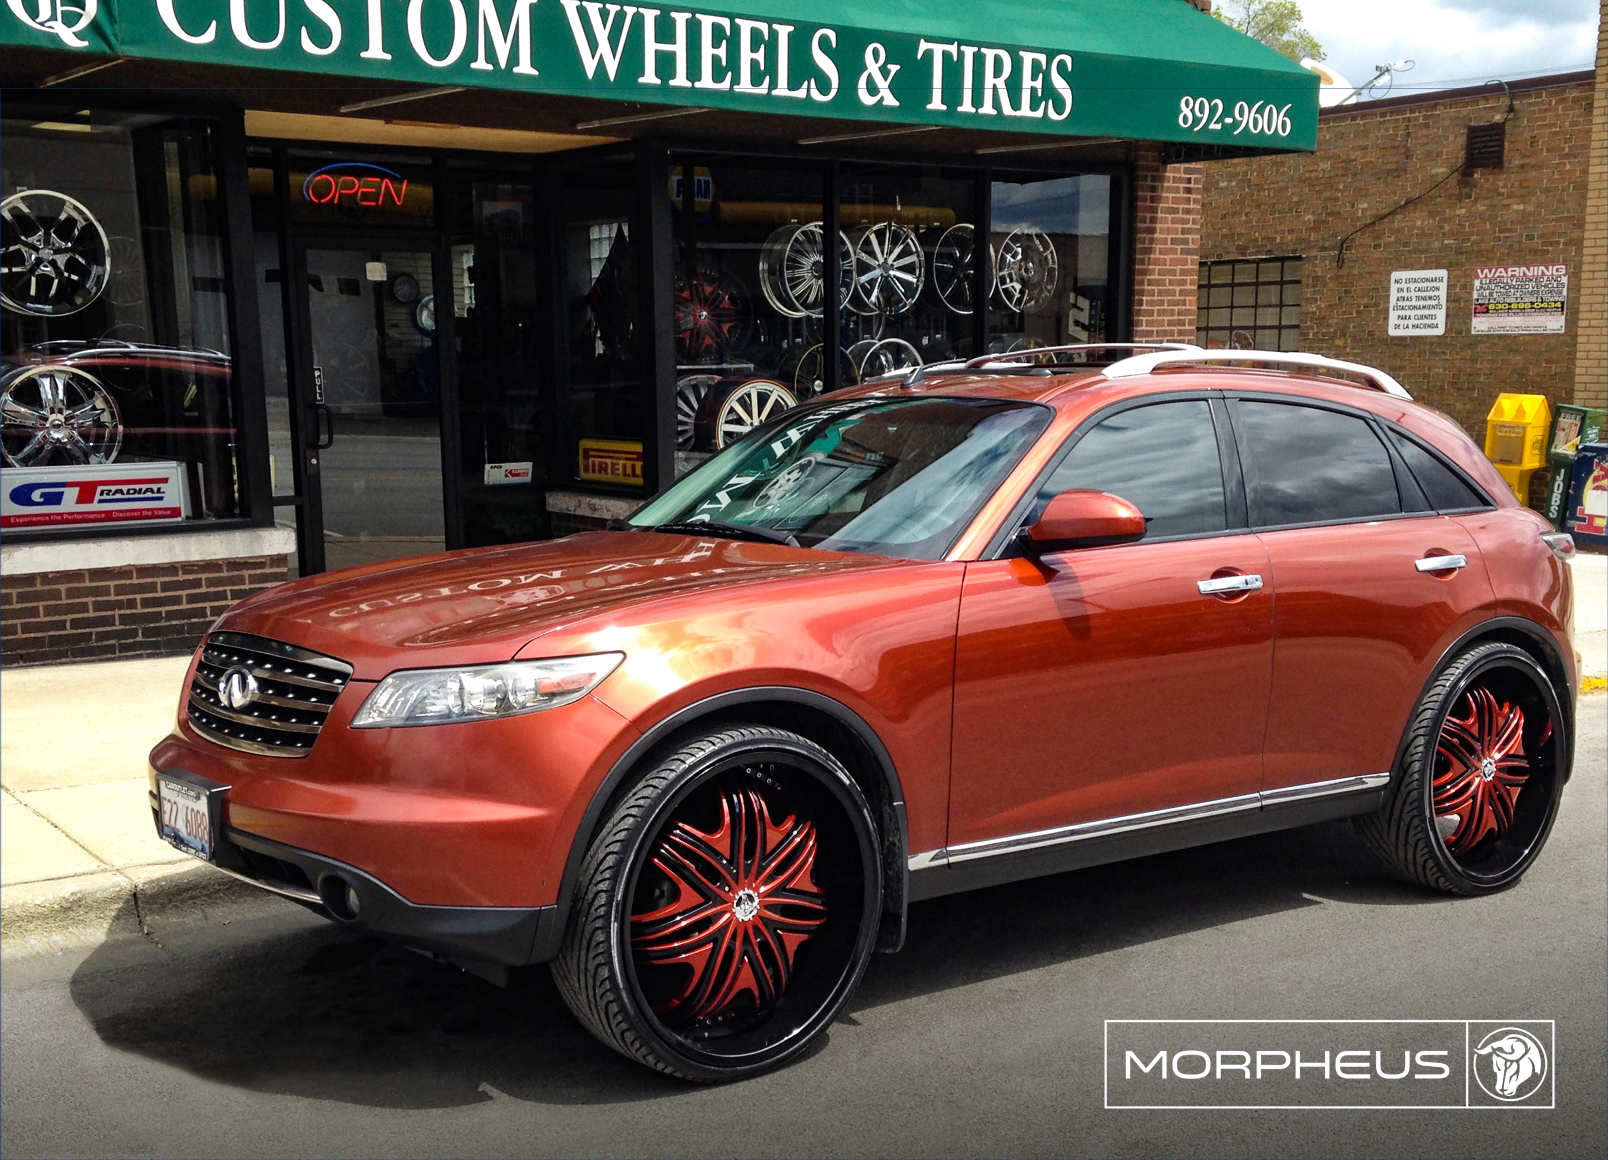 Diablo Wheels - Morpheus on a Infiniti